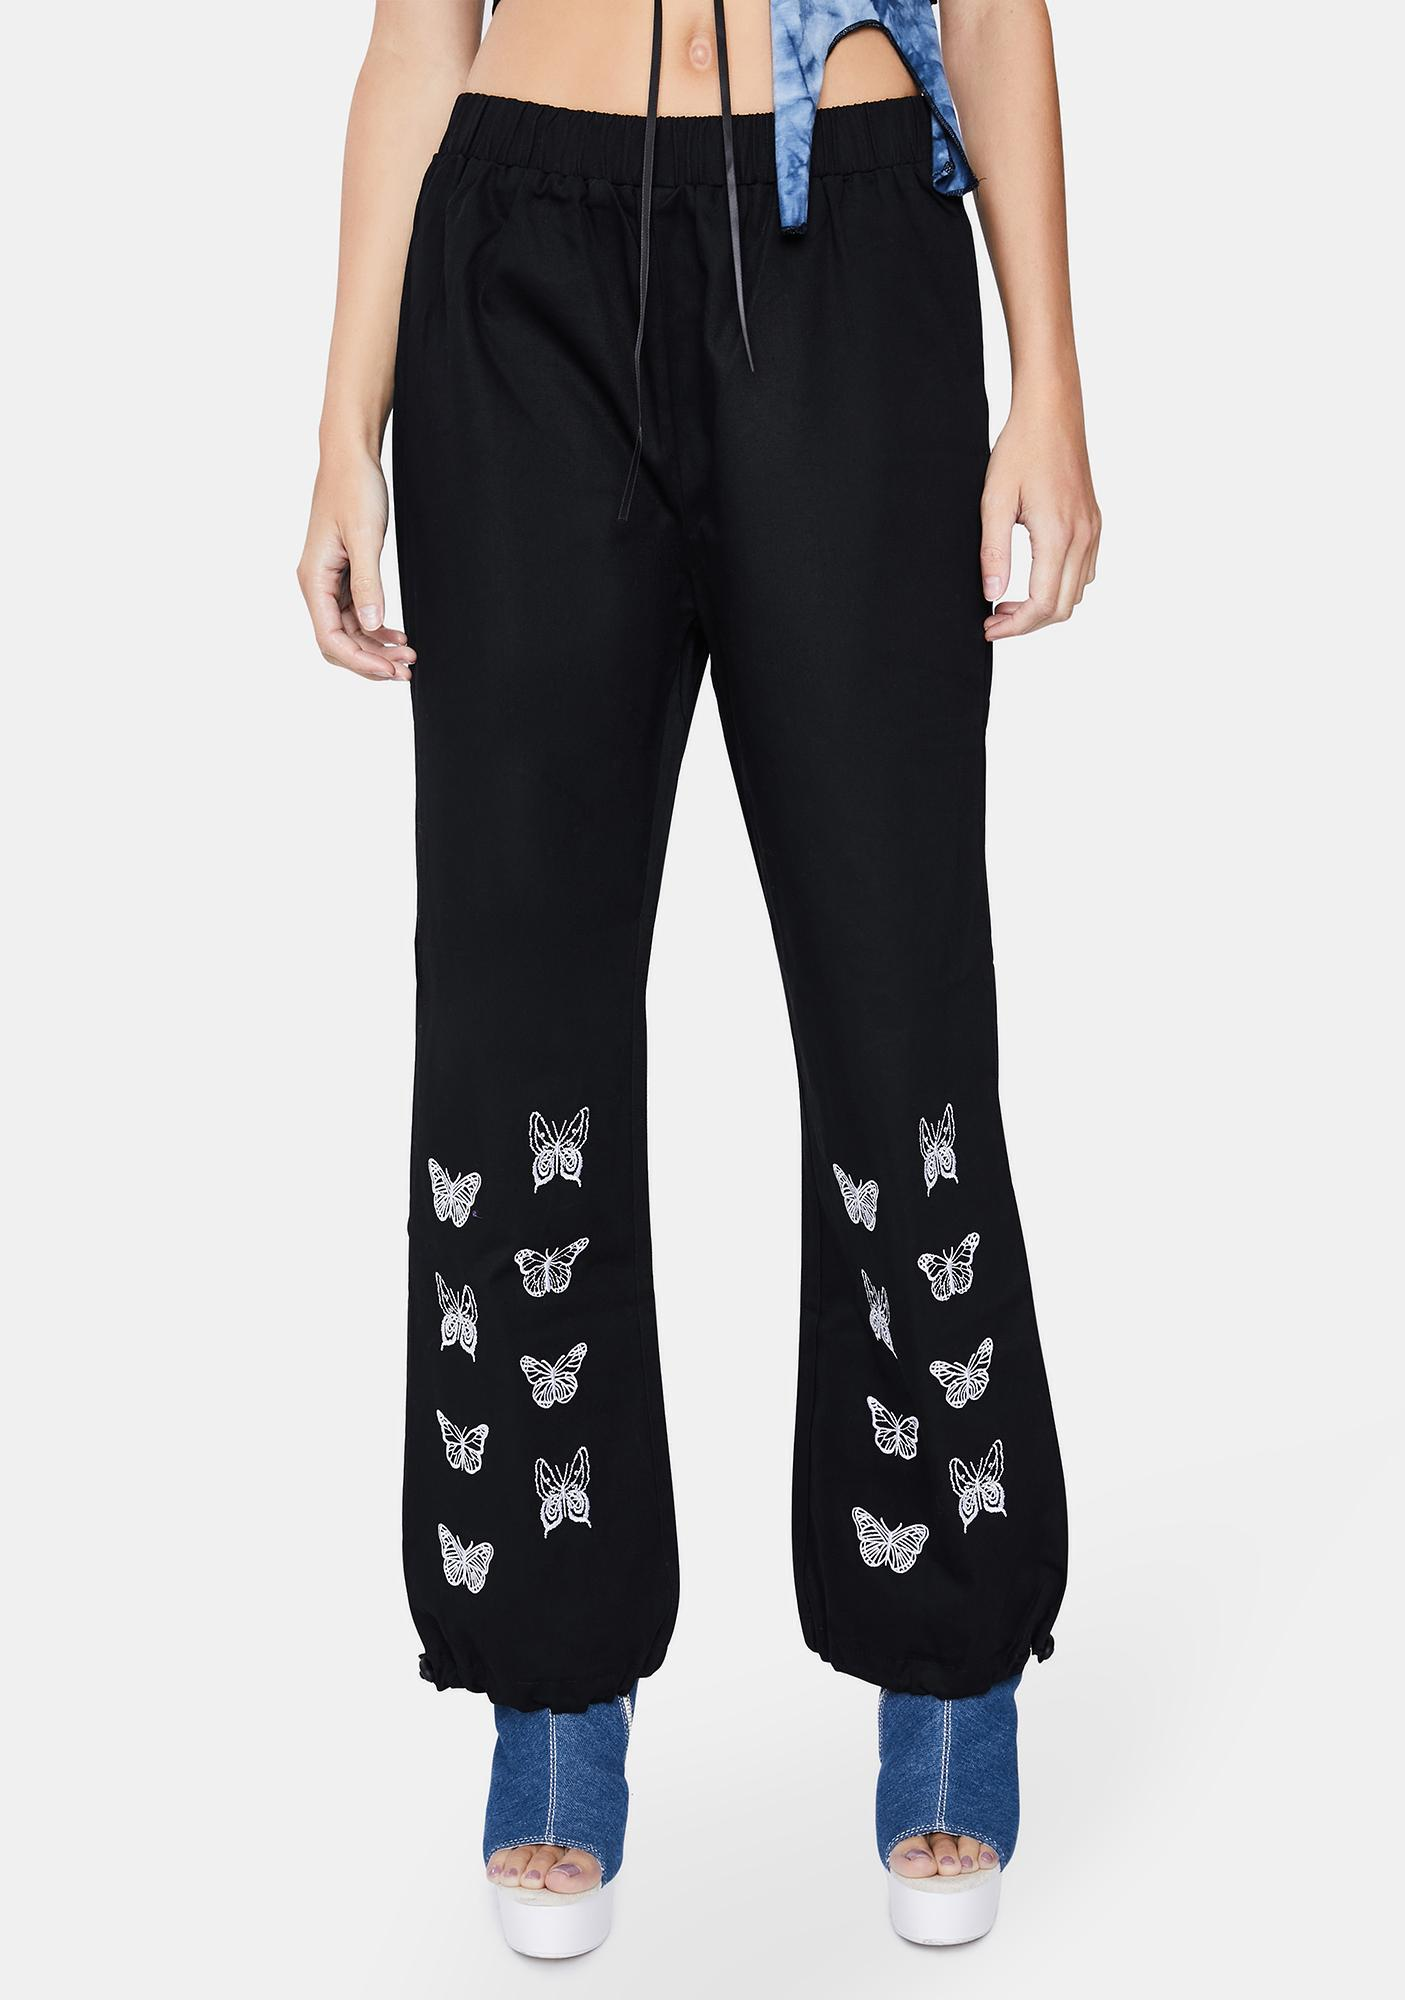 ZEMETA Butterfly Jogger Sweatpants